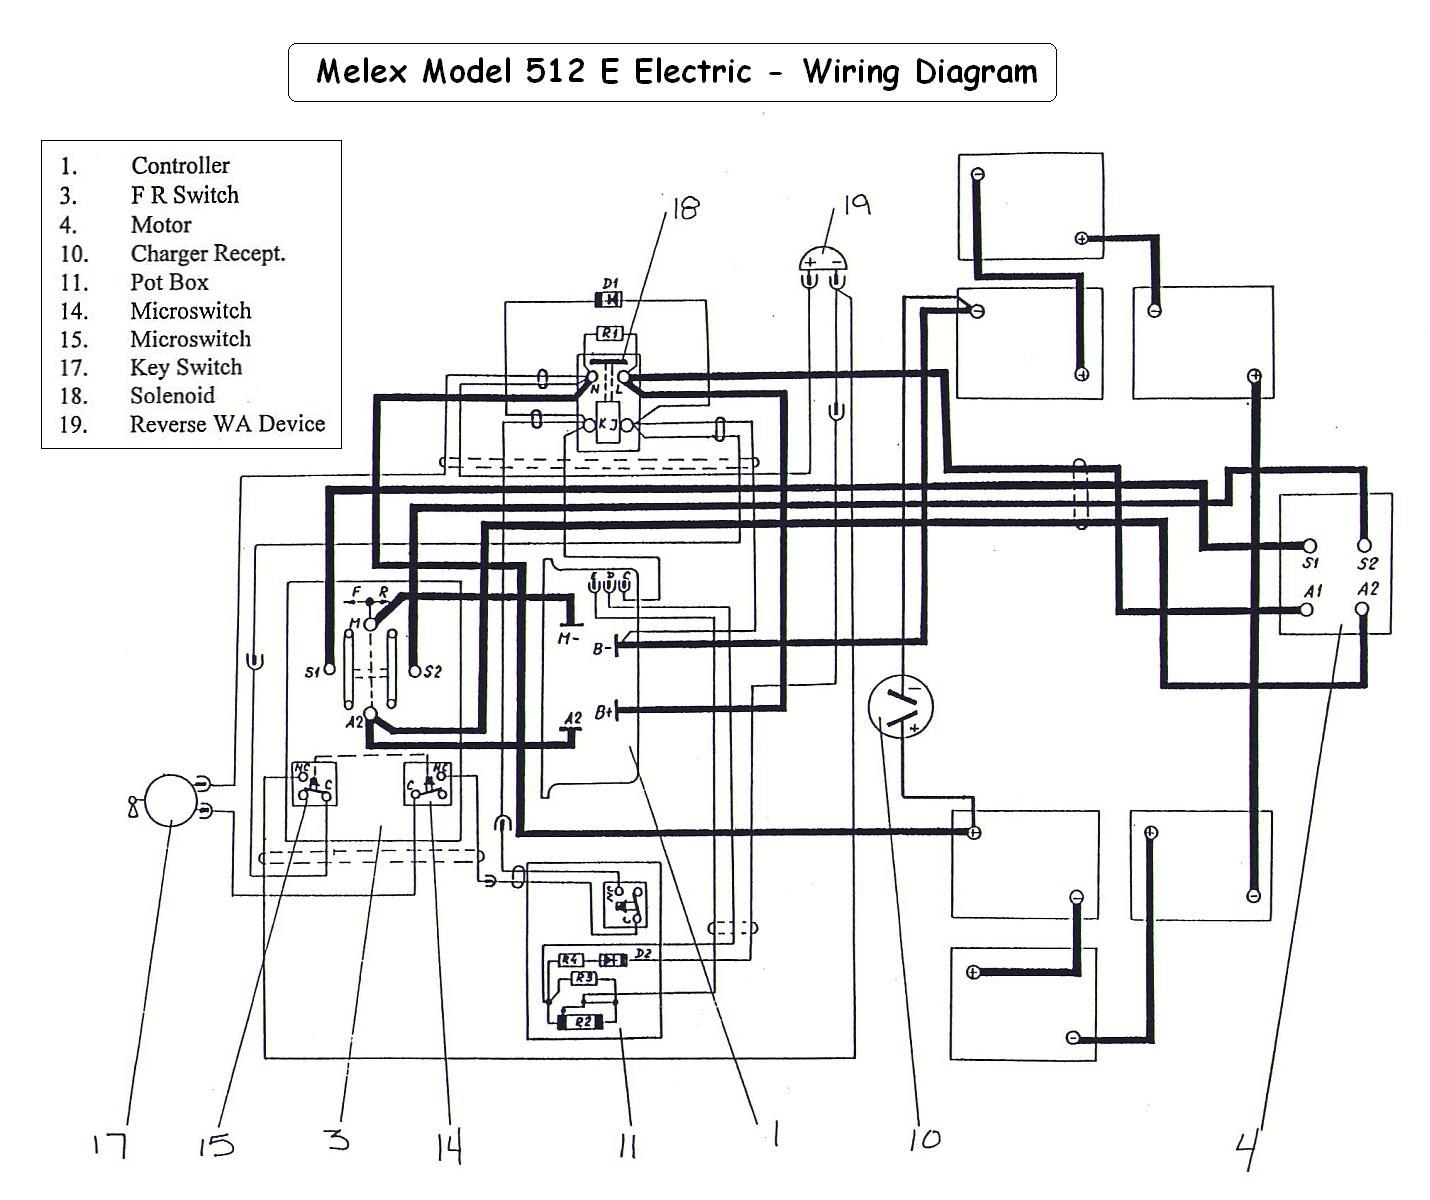 golf cart electric wiring diagram wiring diagram todaysvintagegolfcartparts com western electric golf cart wiring diagram golf cart electric wiring diagram